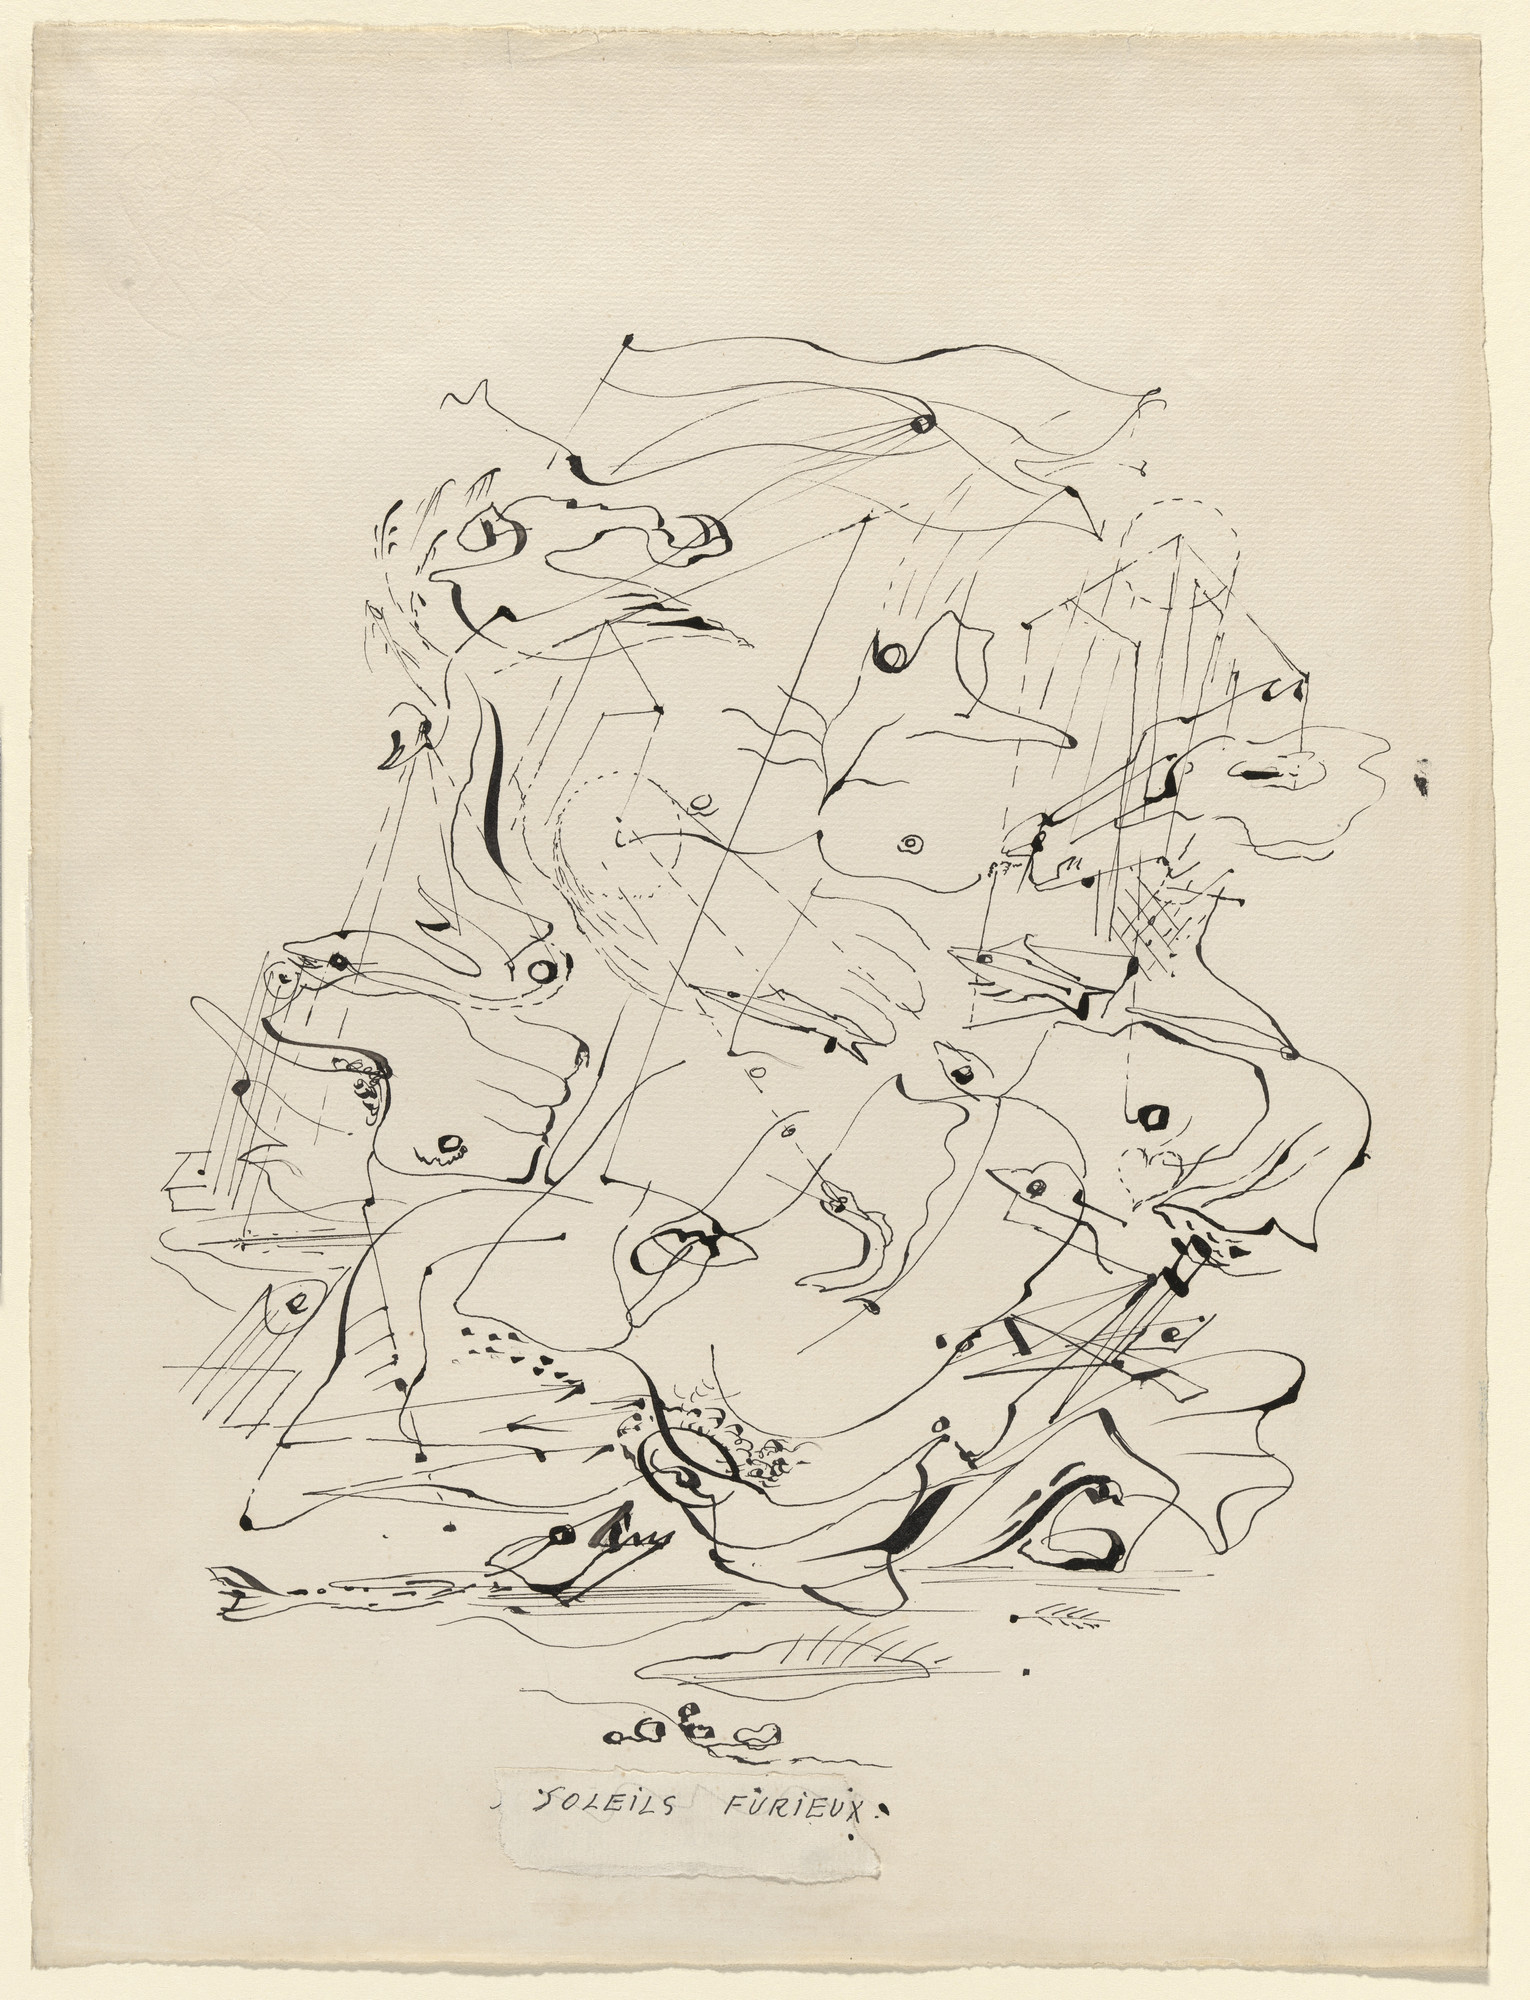 André Masson. Furious Suns. 1925